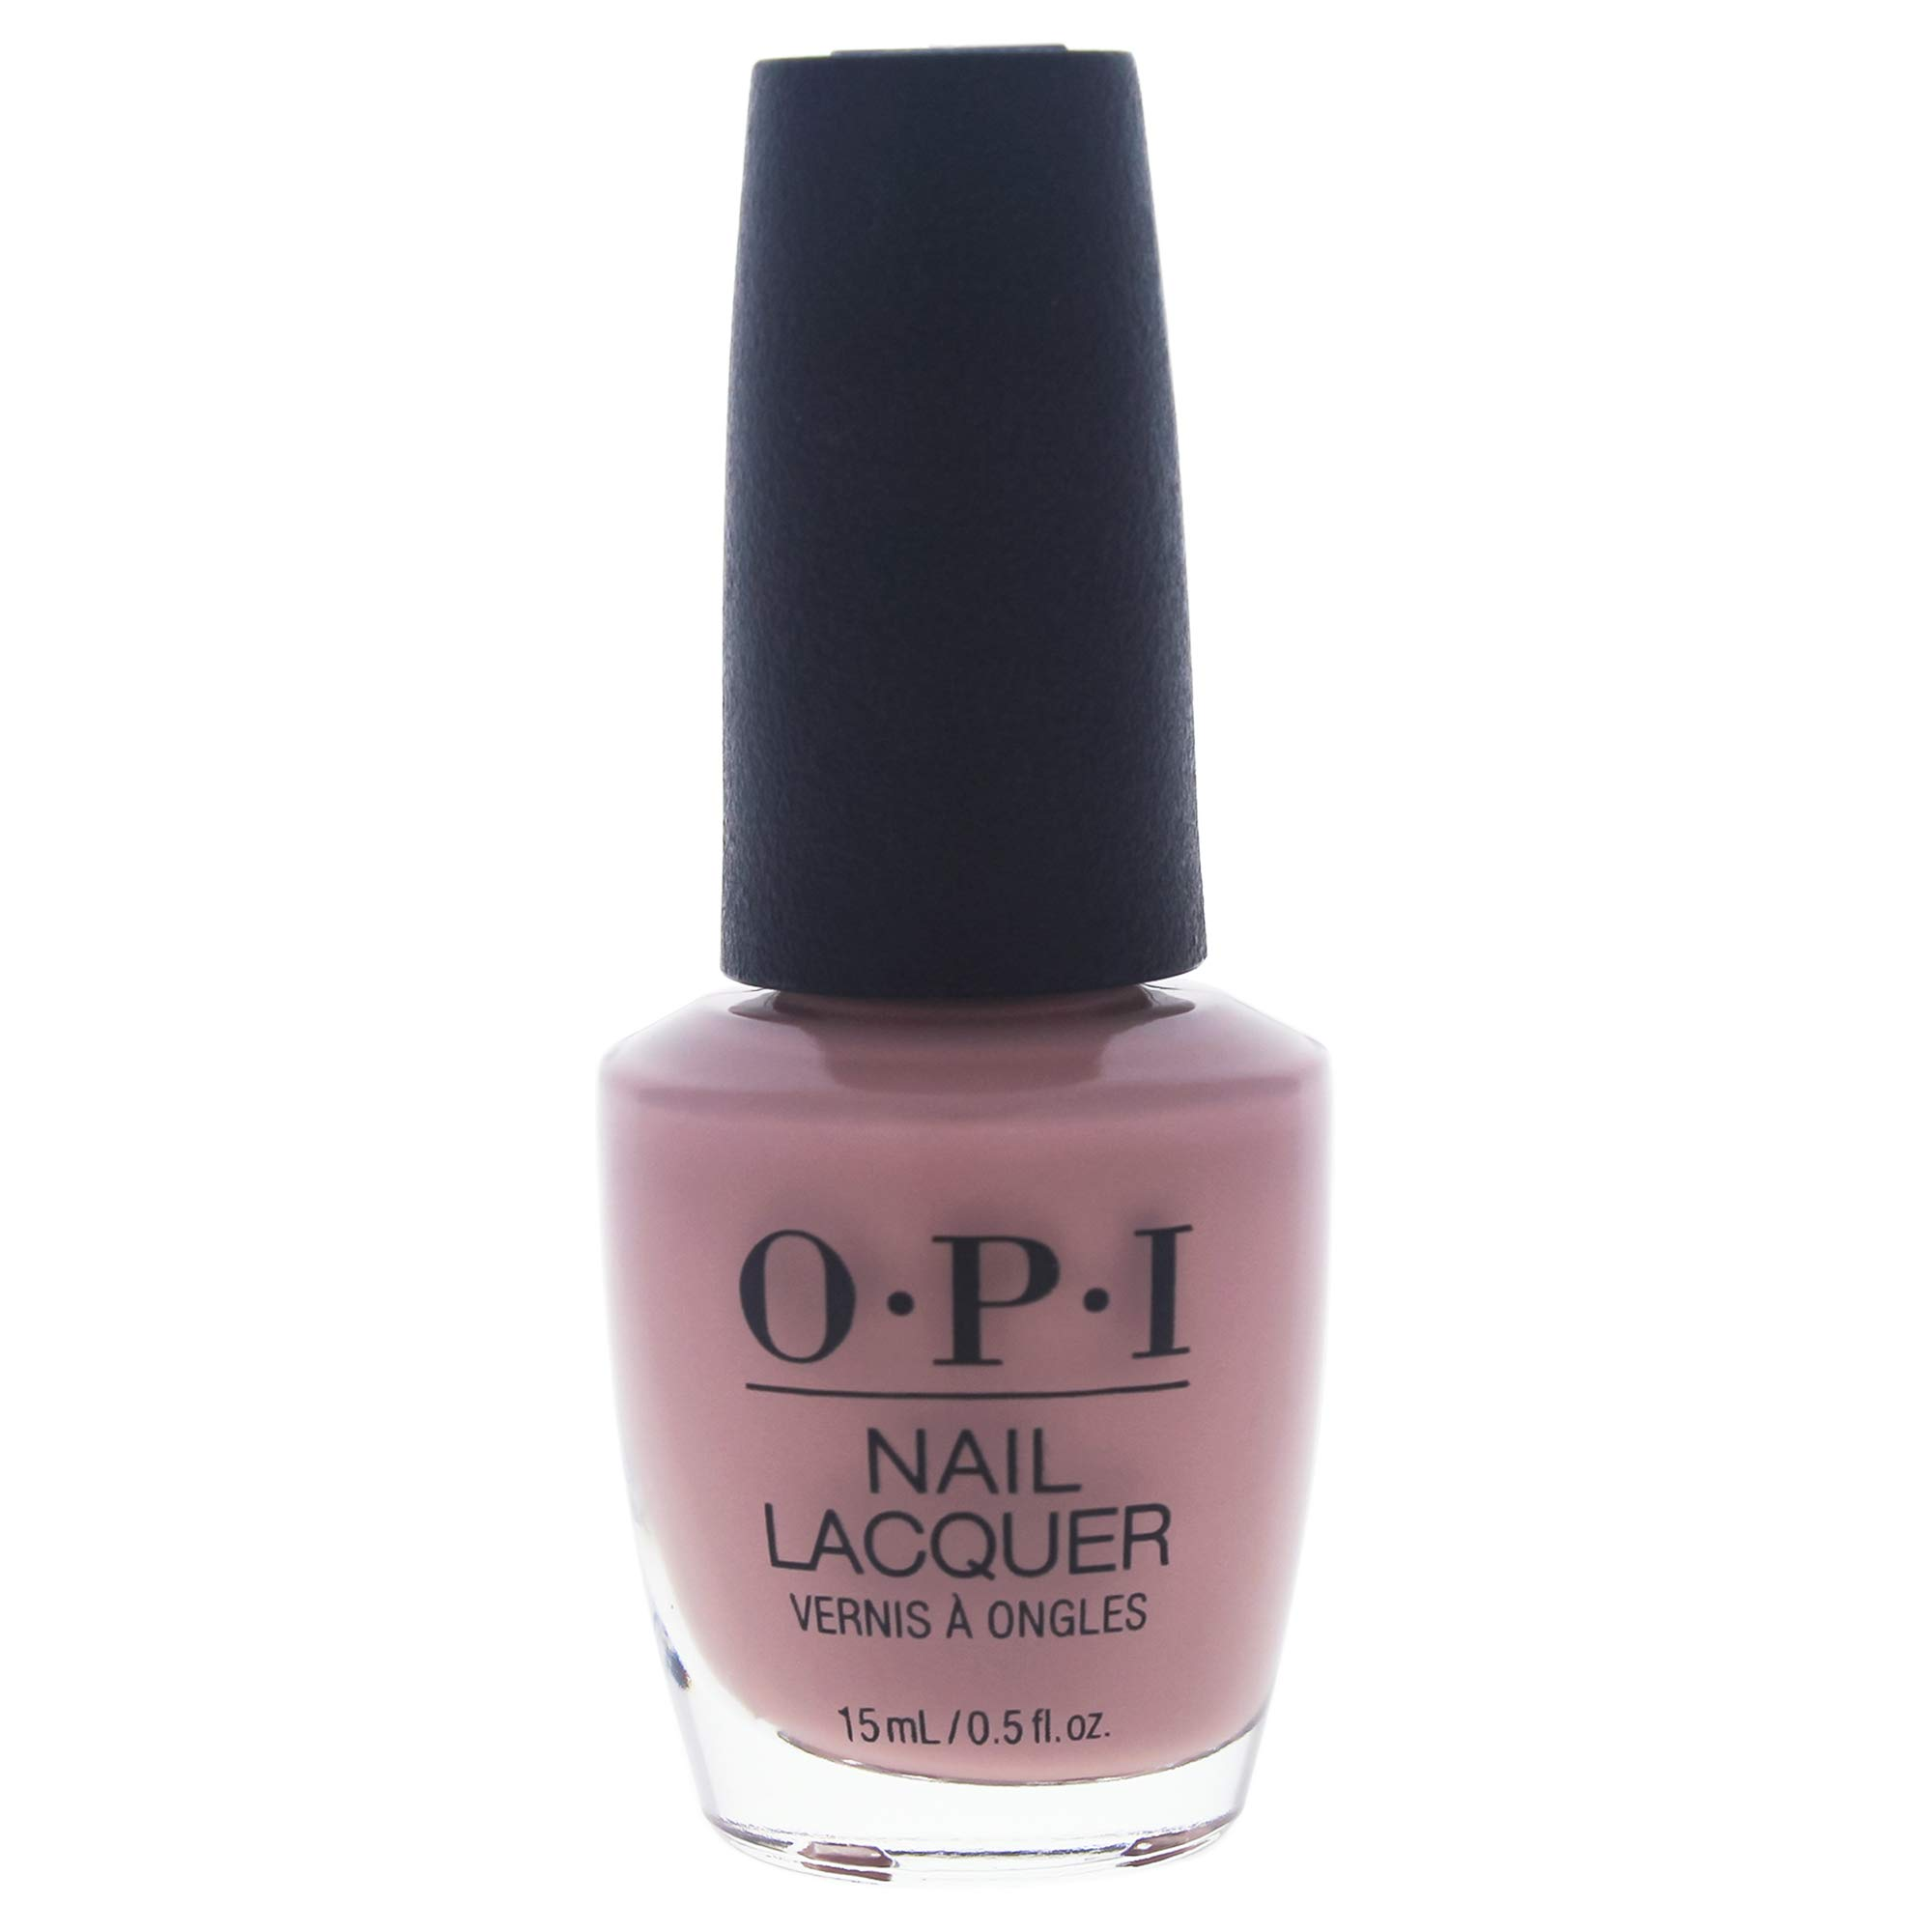 OPI Nail Polish Peru Collection, Nail Lacquer, 0.5 Fl Oz, 0.5 Fl Oz by OPI